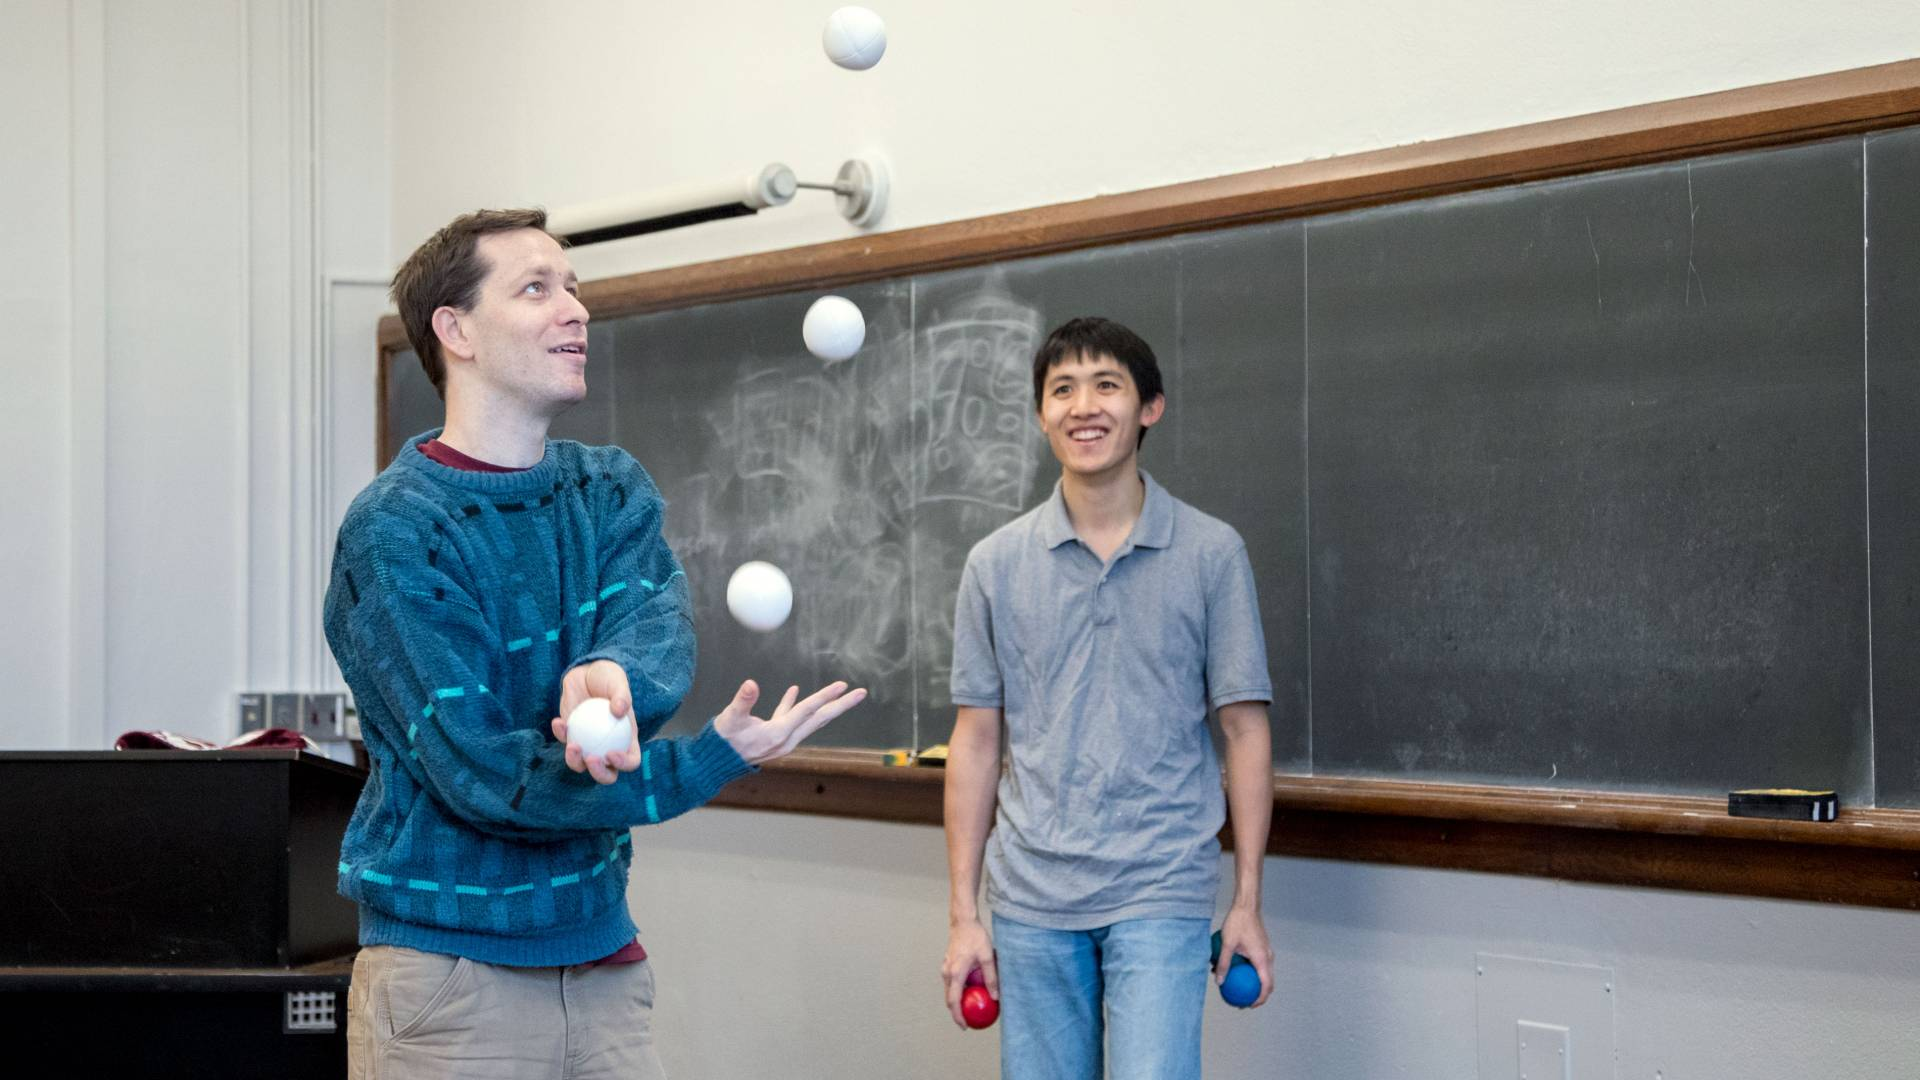 Students juggling in classroom